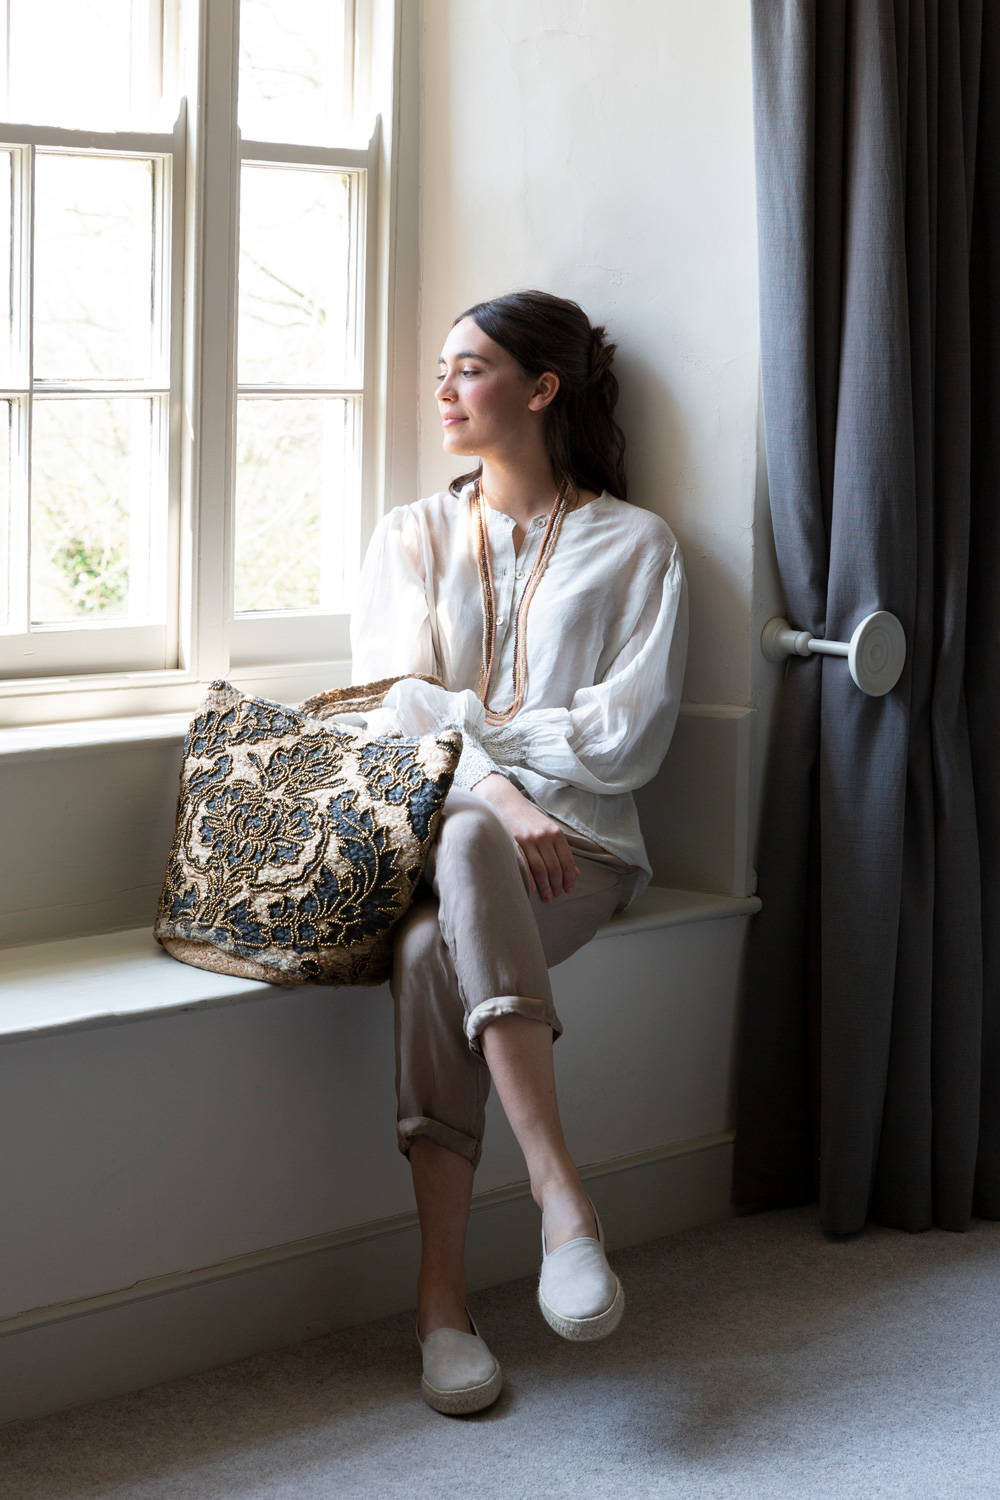 Seated model wearing neutral trousers and white blouse.